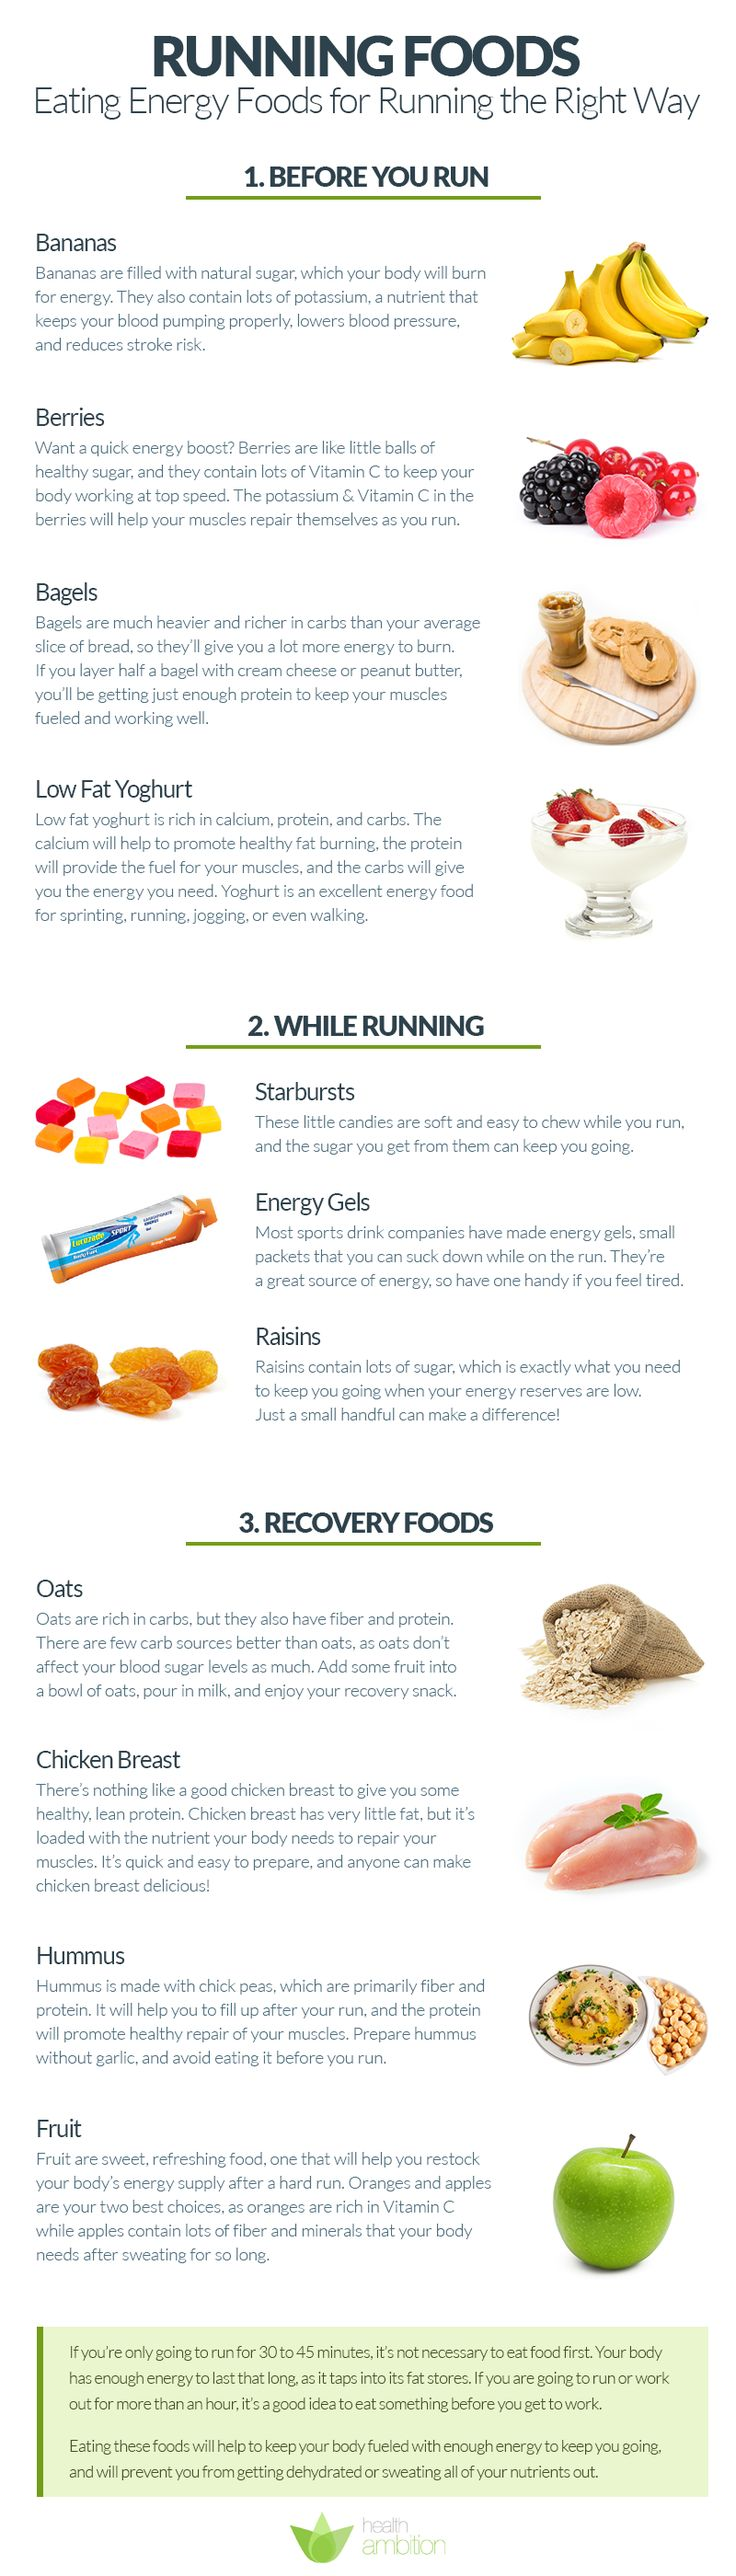 Running foods eating energy foods for running the right way